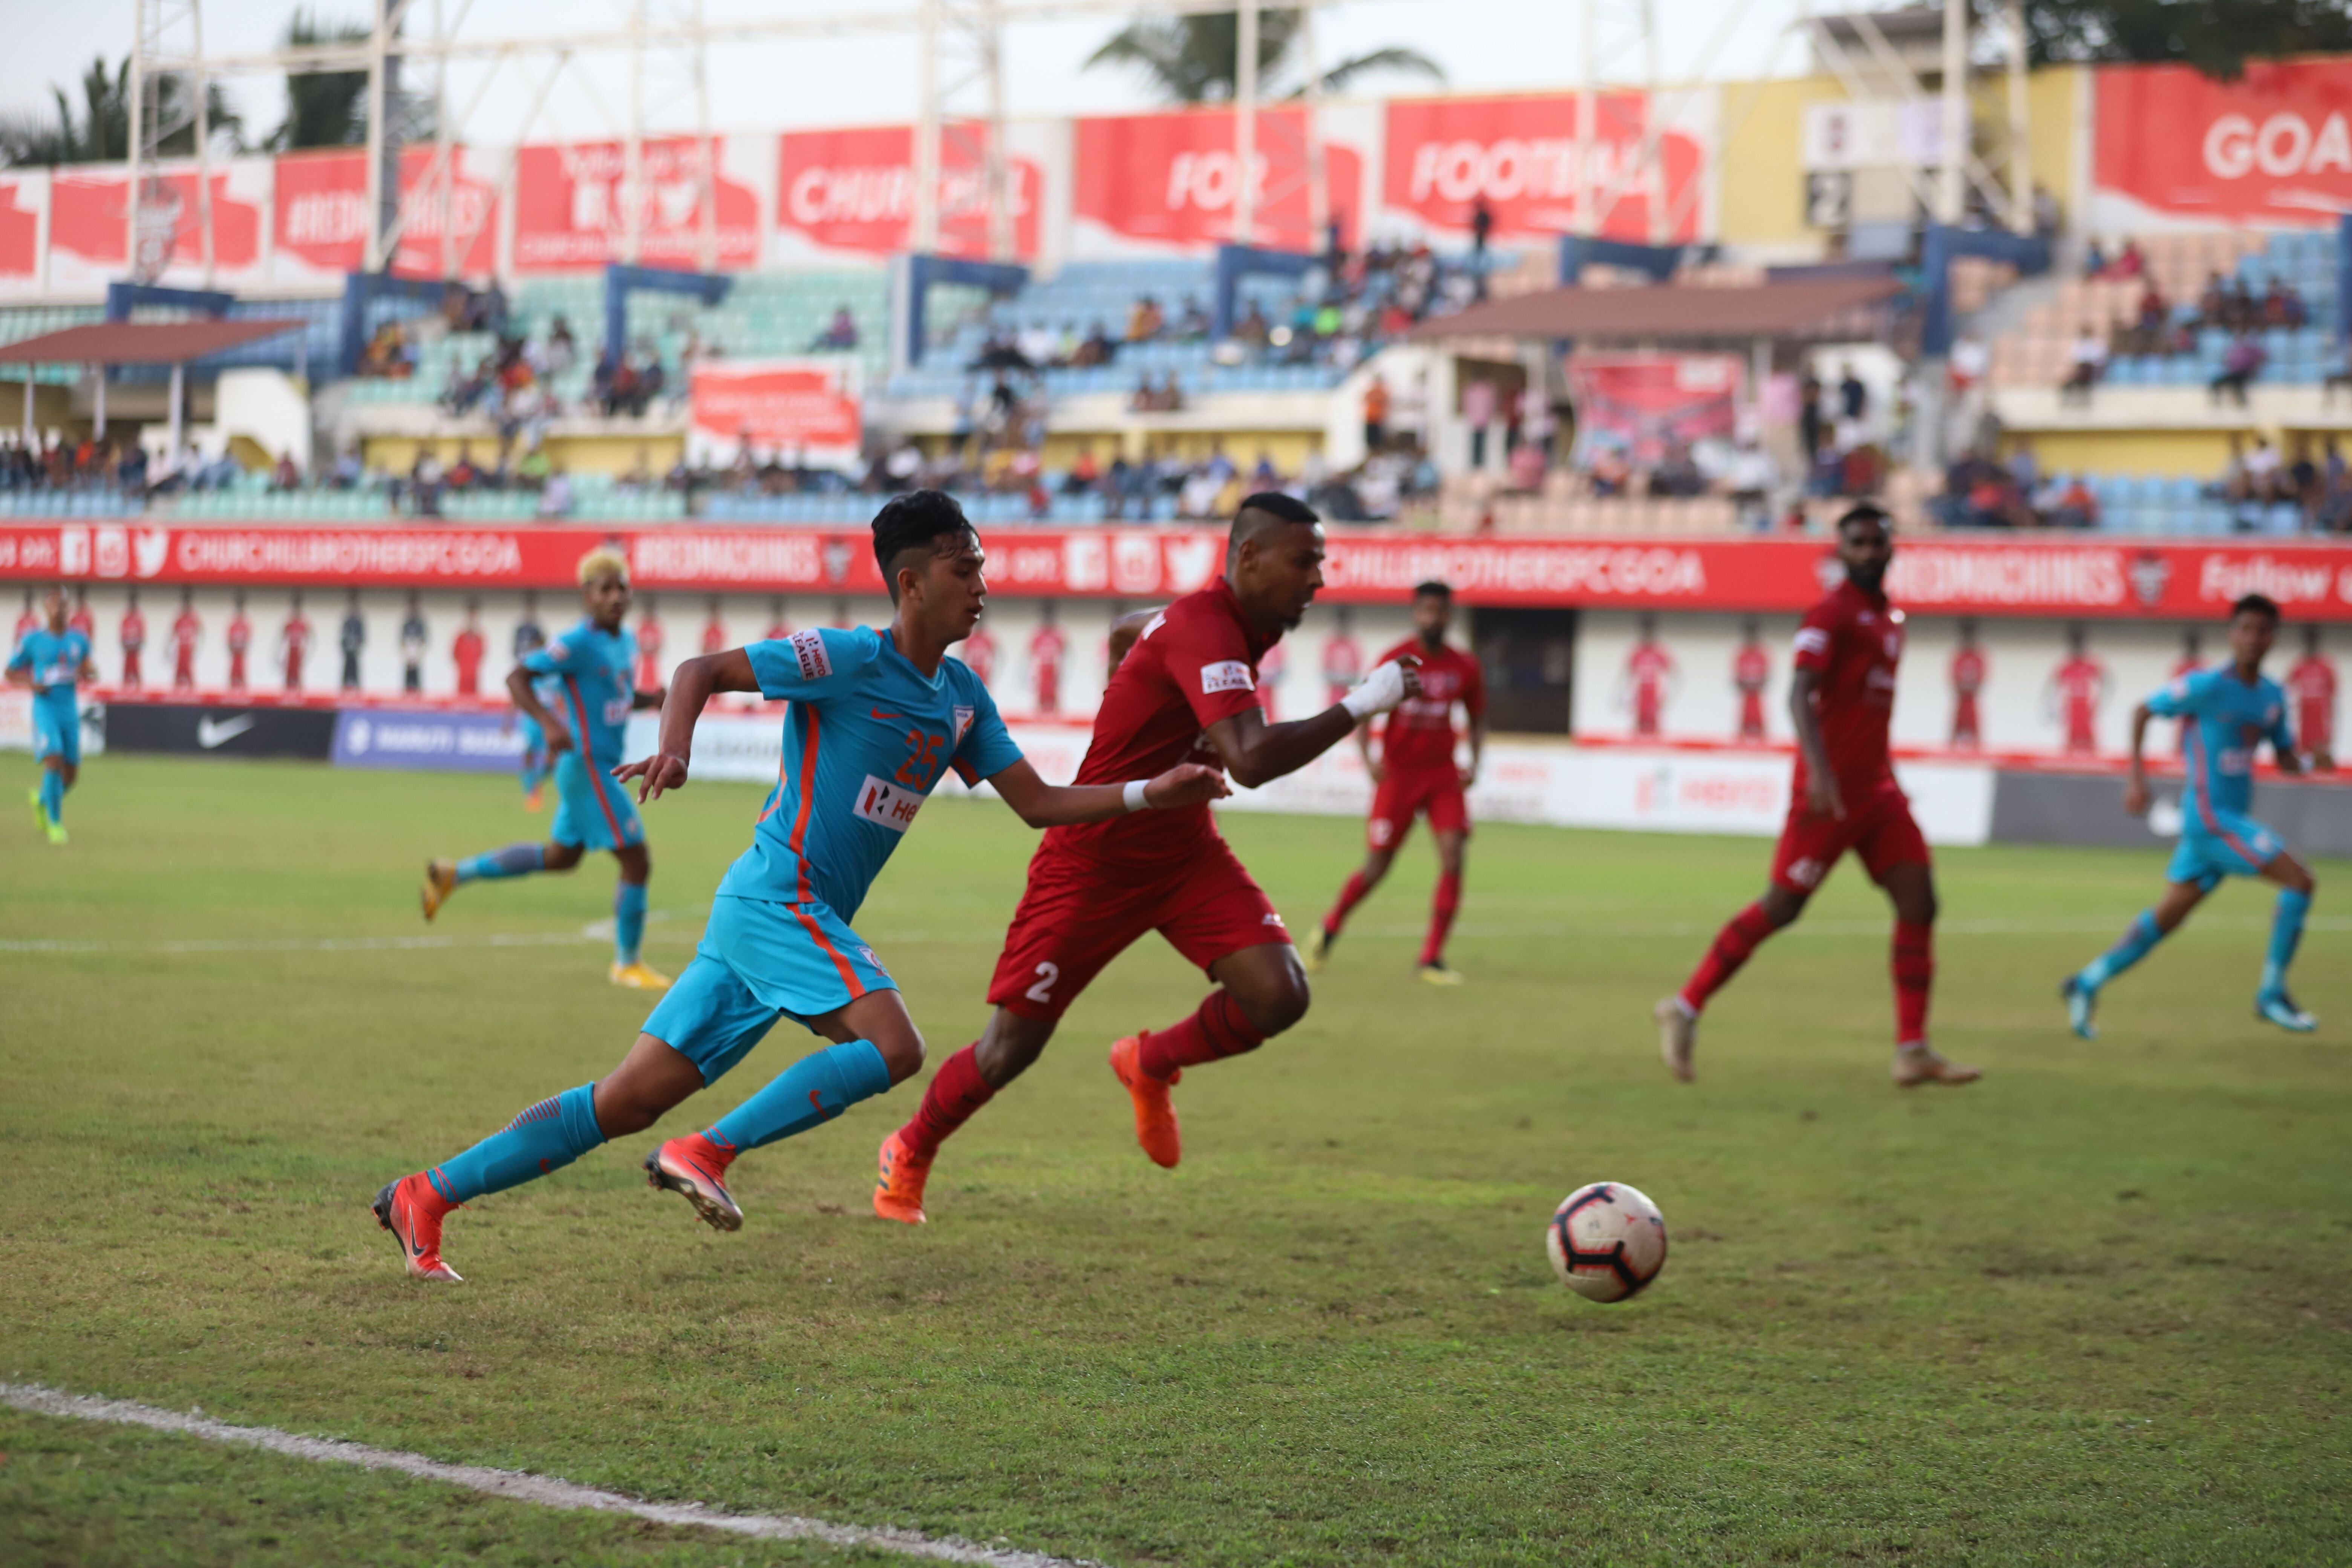 Rohit Danu - Playing in the I-League one of the best things to happen to me